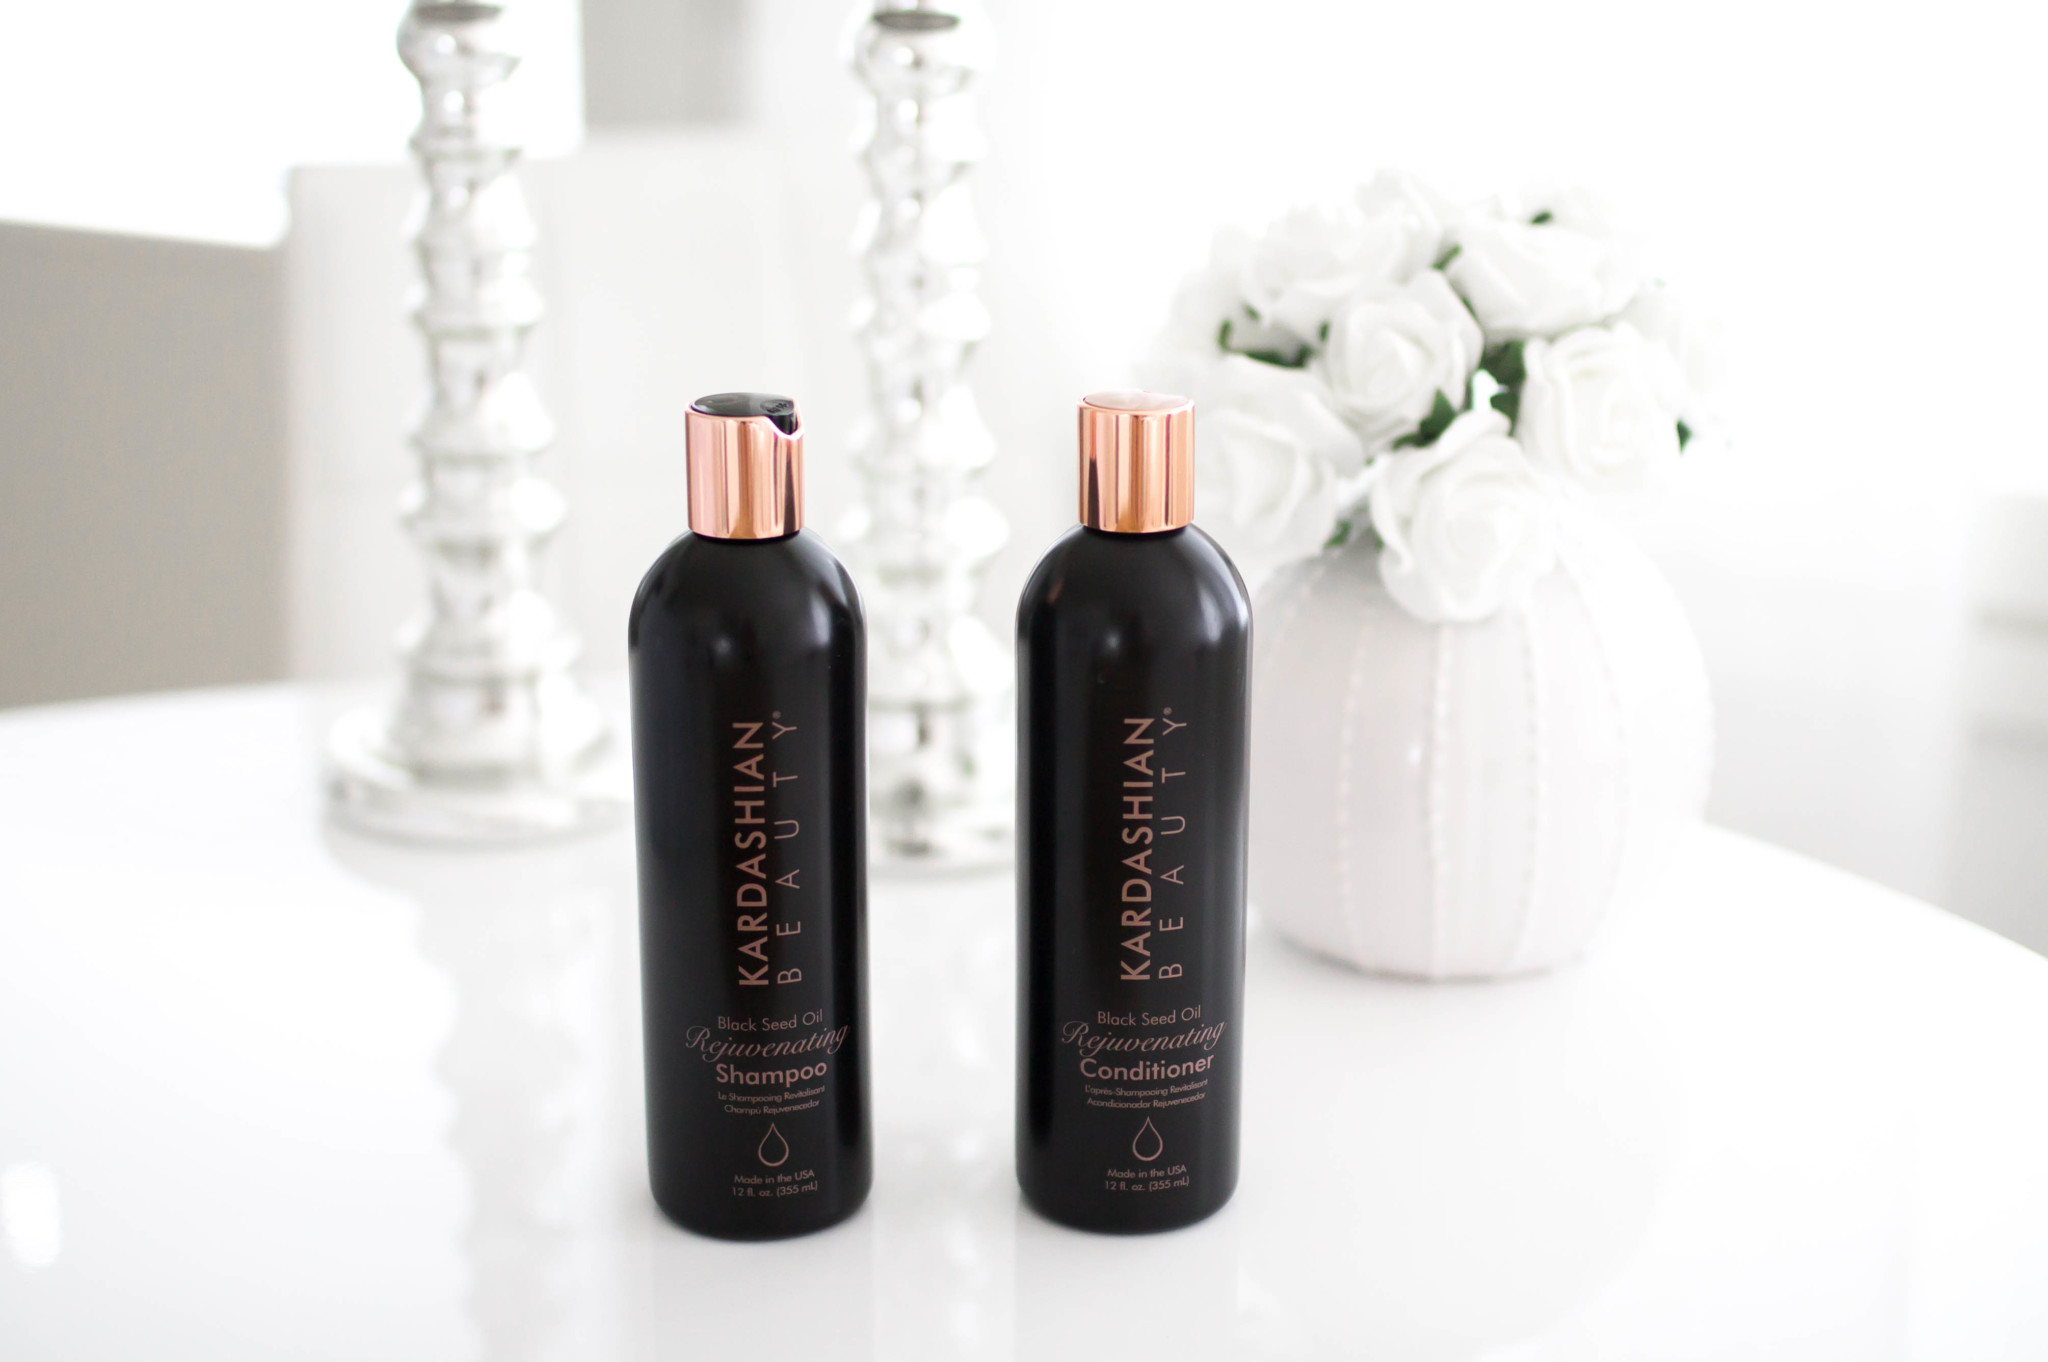 kardashian beauty shampoo